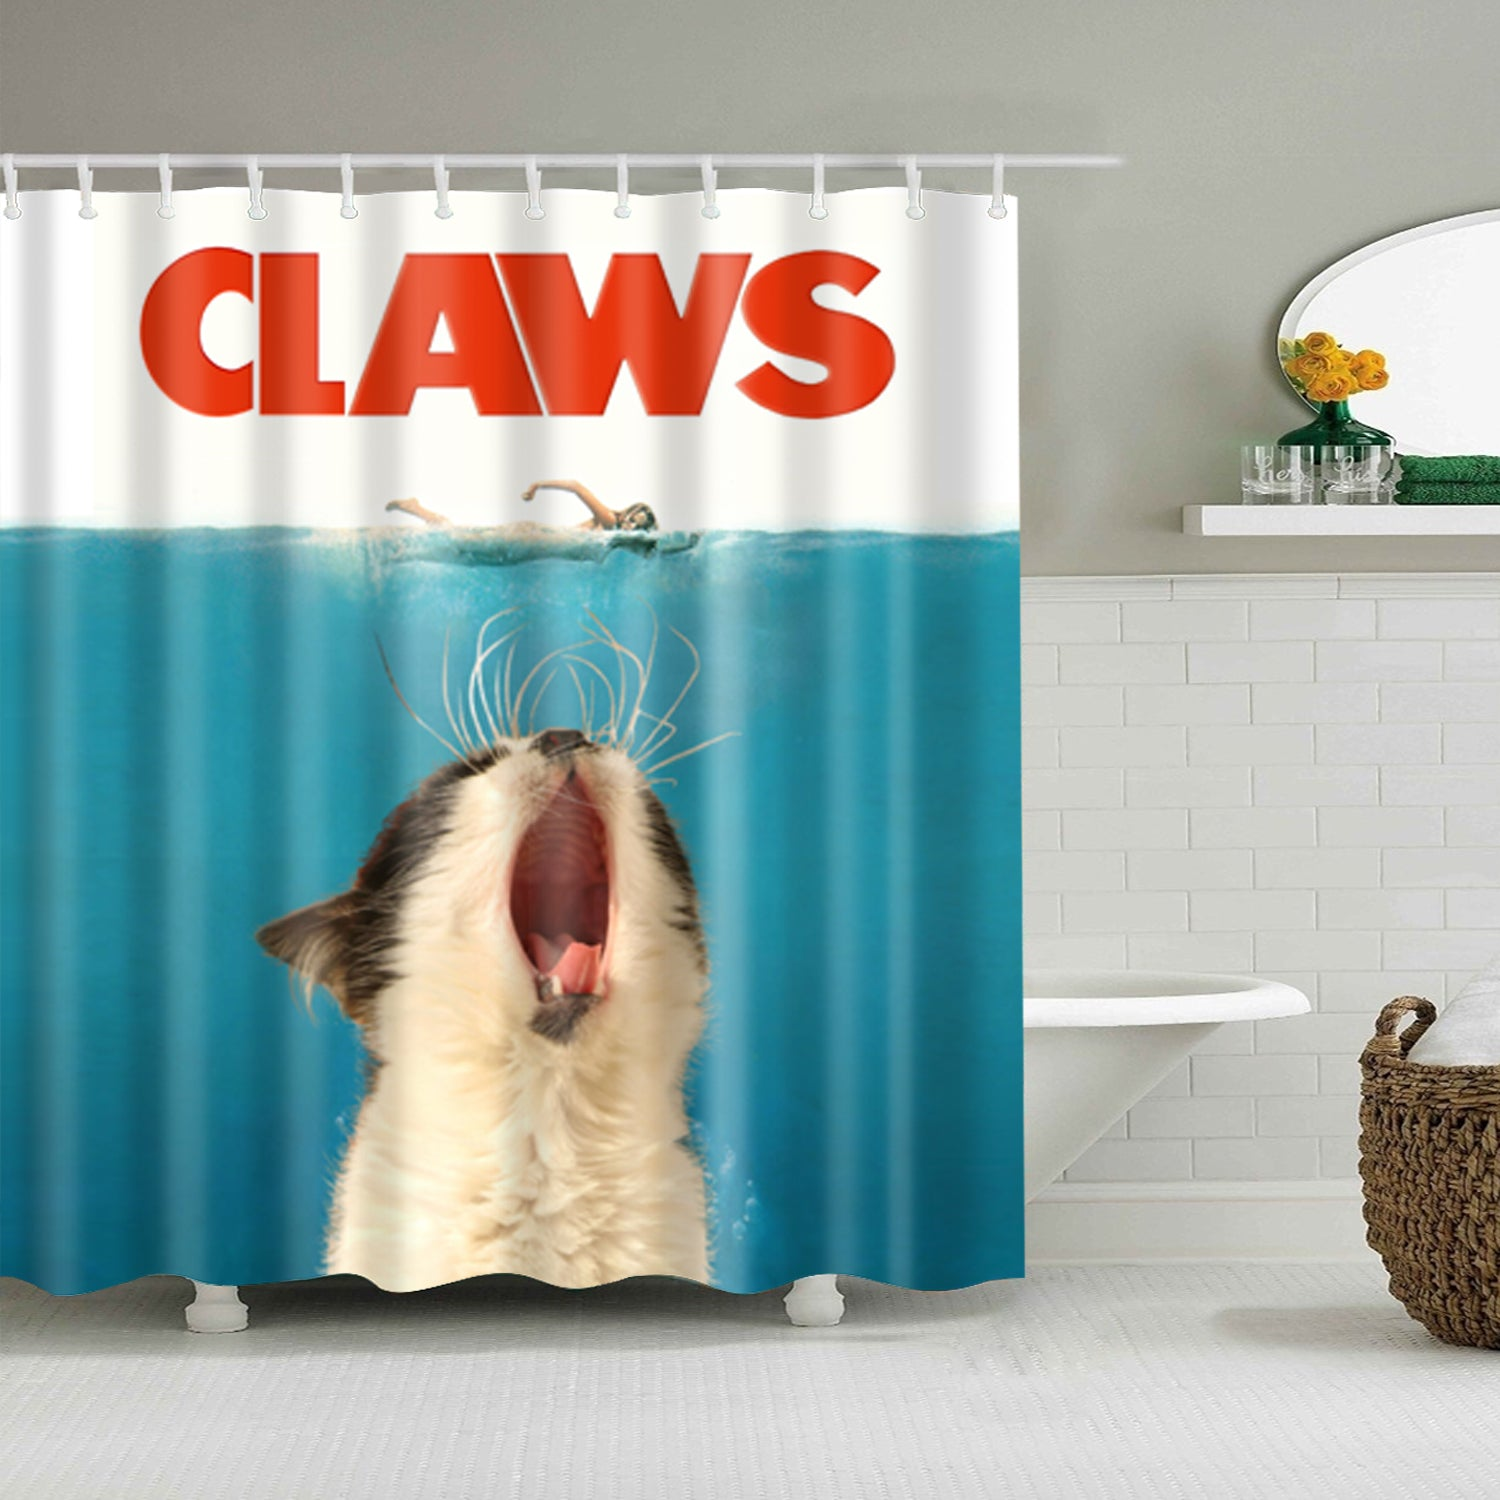 Yelling Kitten Claws Shower Curtain | GoJeek